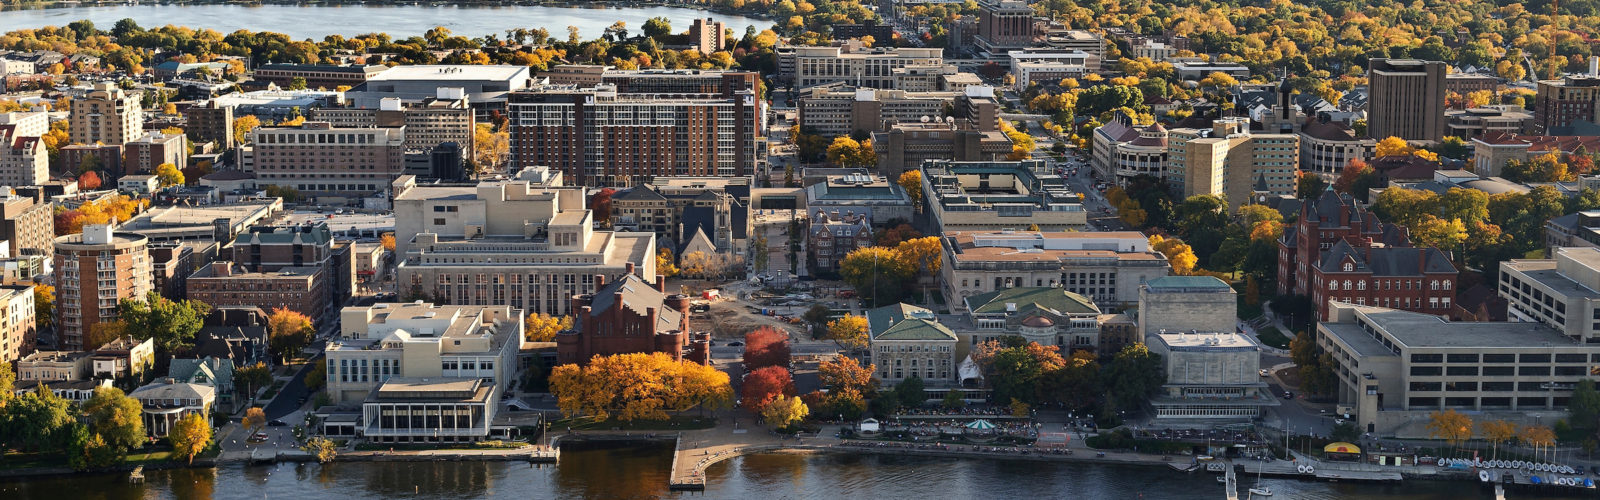 The Lake Mendota shoreline is pictured in an aerial view